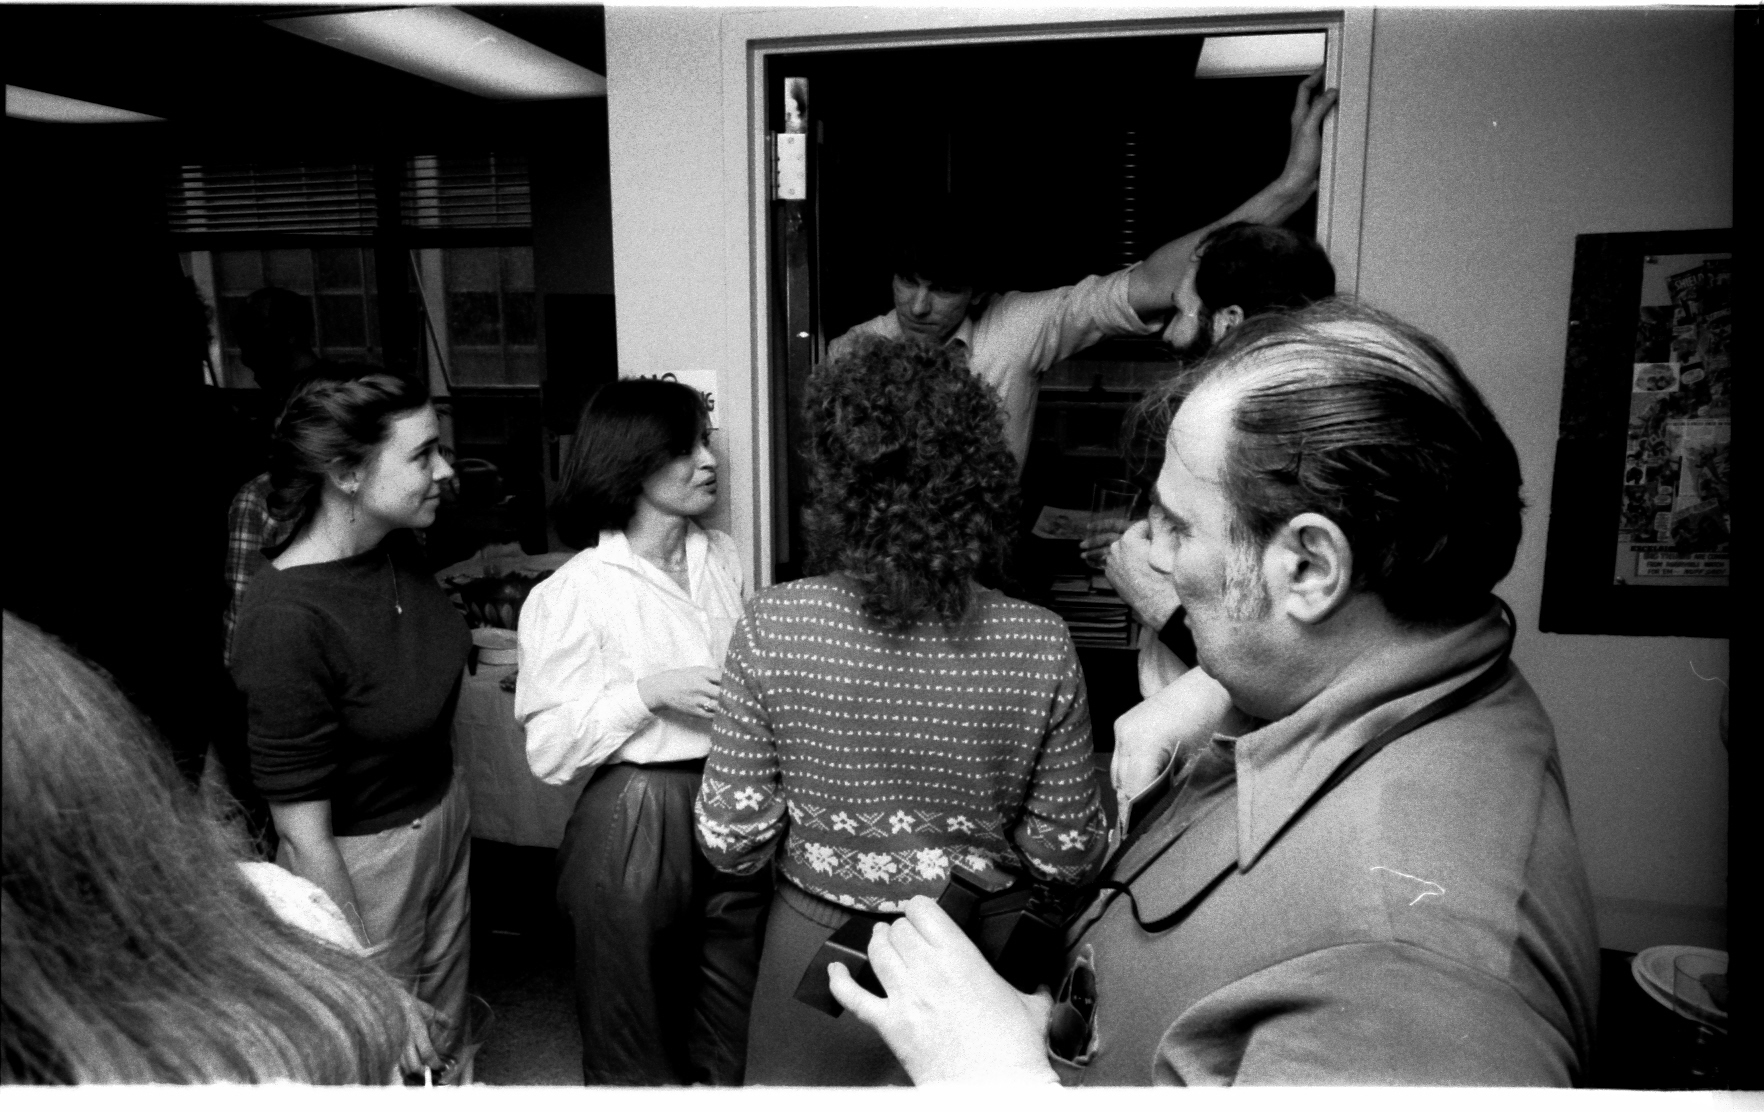 Talkin' to the Big Guy-- Jim Shooter in the doorway. L-R: Deb Highly, Carol Jazwinski and the back of Nancy Golden. Not sure who is obscured by Danny Crespi in the foreground-- could be Allan Weiss?